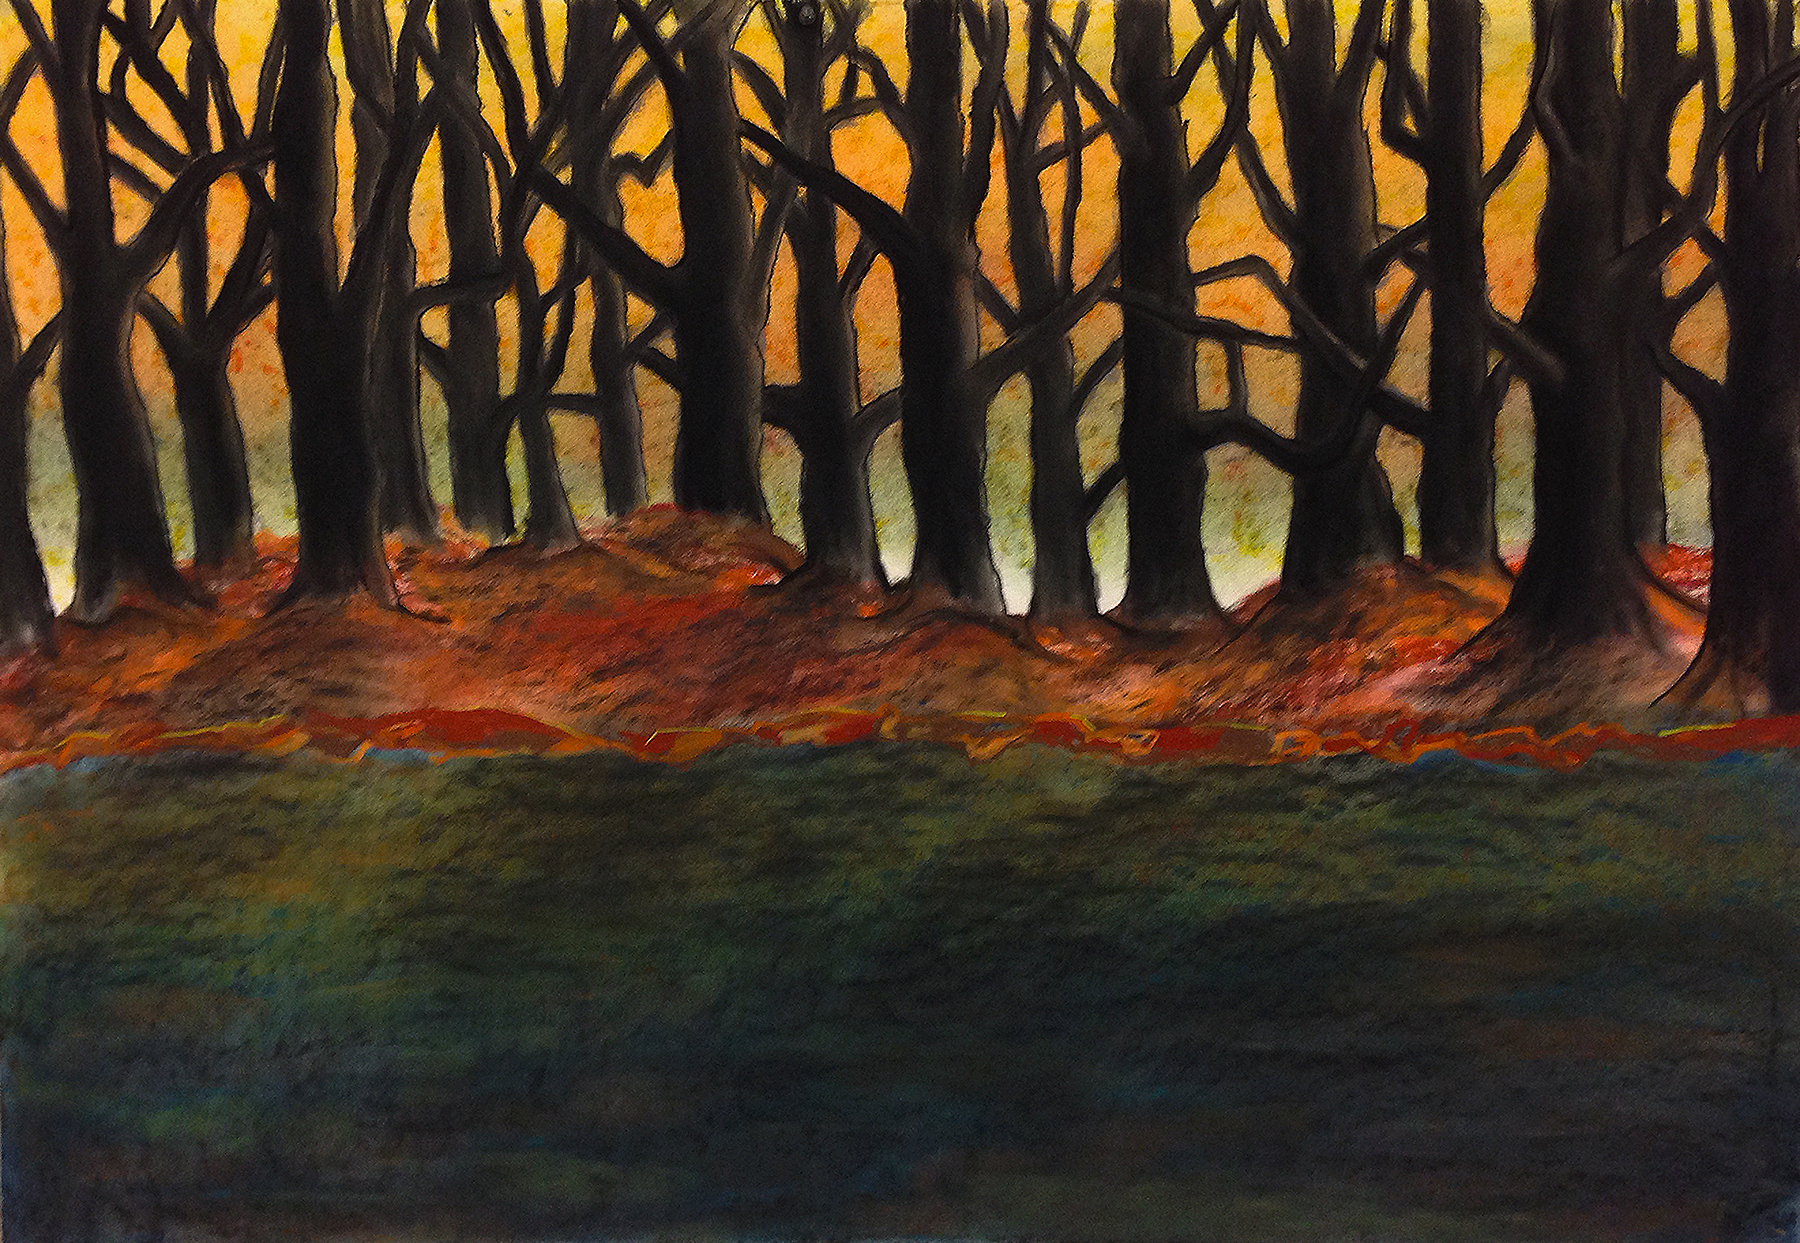 Scout K. Austin  and Kellie Weeks,  Untitled No. 21   pastel and charcoal, 44 x 30 in., $600.00